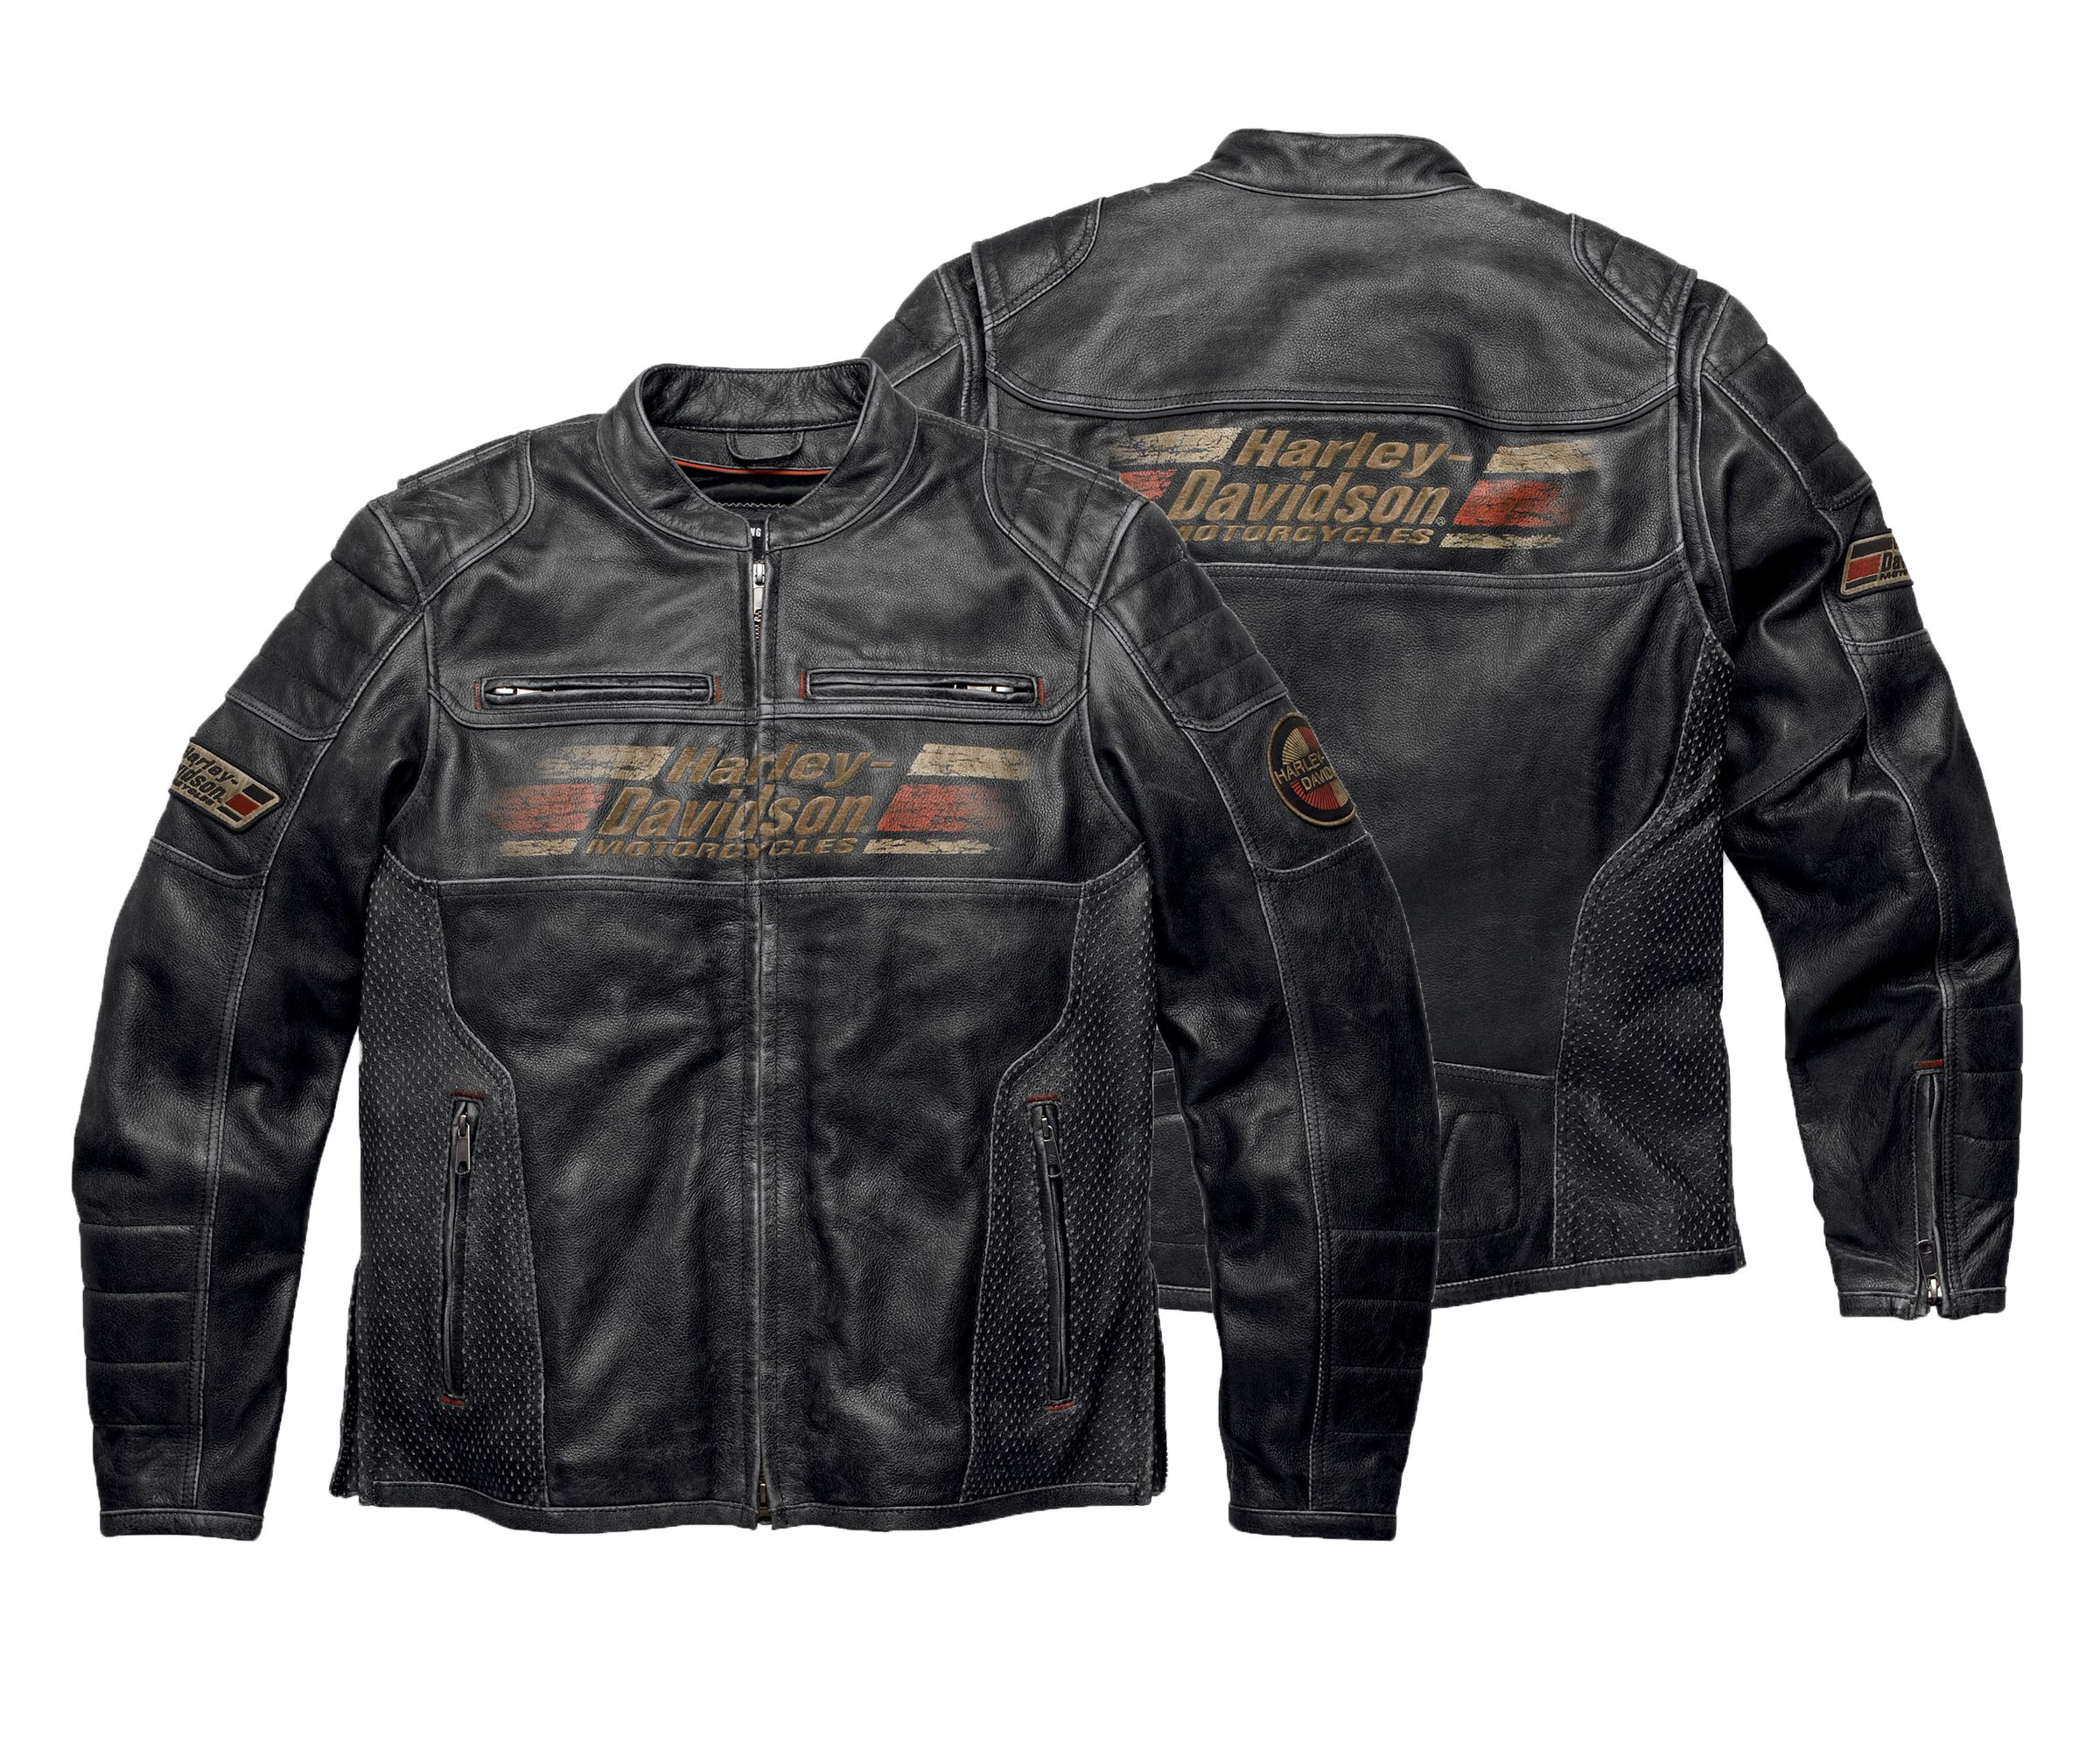 7223ac133bceb2 Harley-Davidson Men s Astor Leather Jacket  Available Sizes S